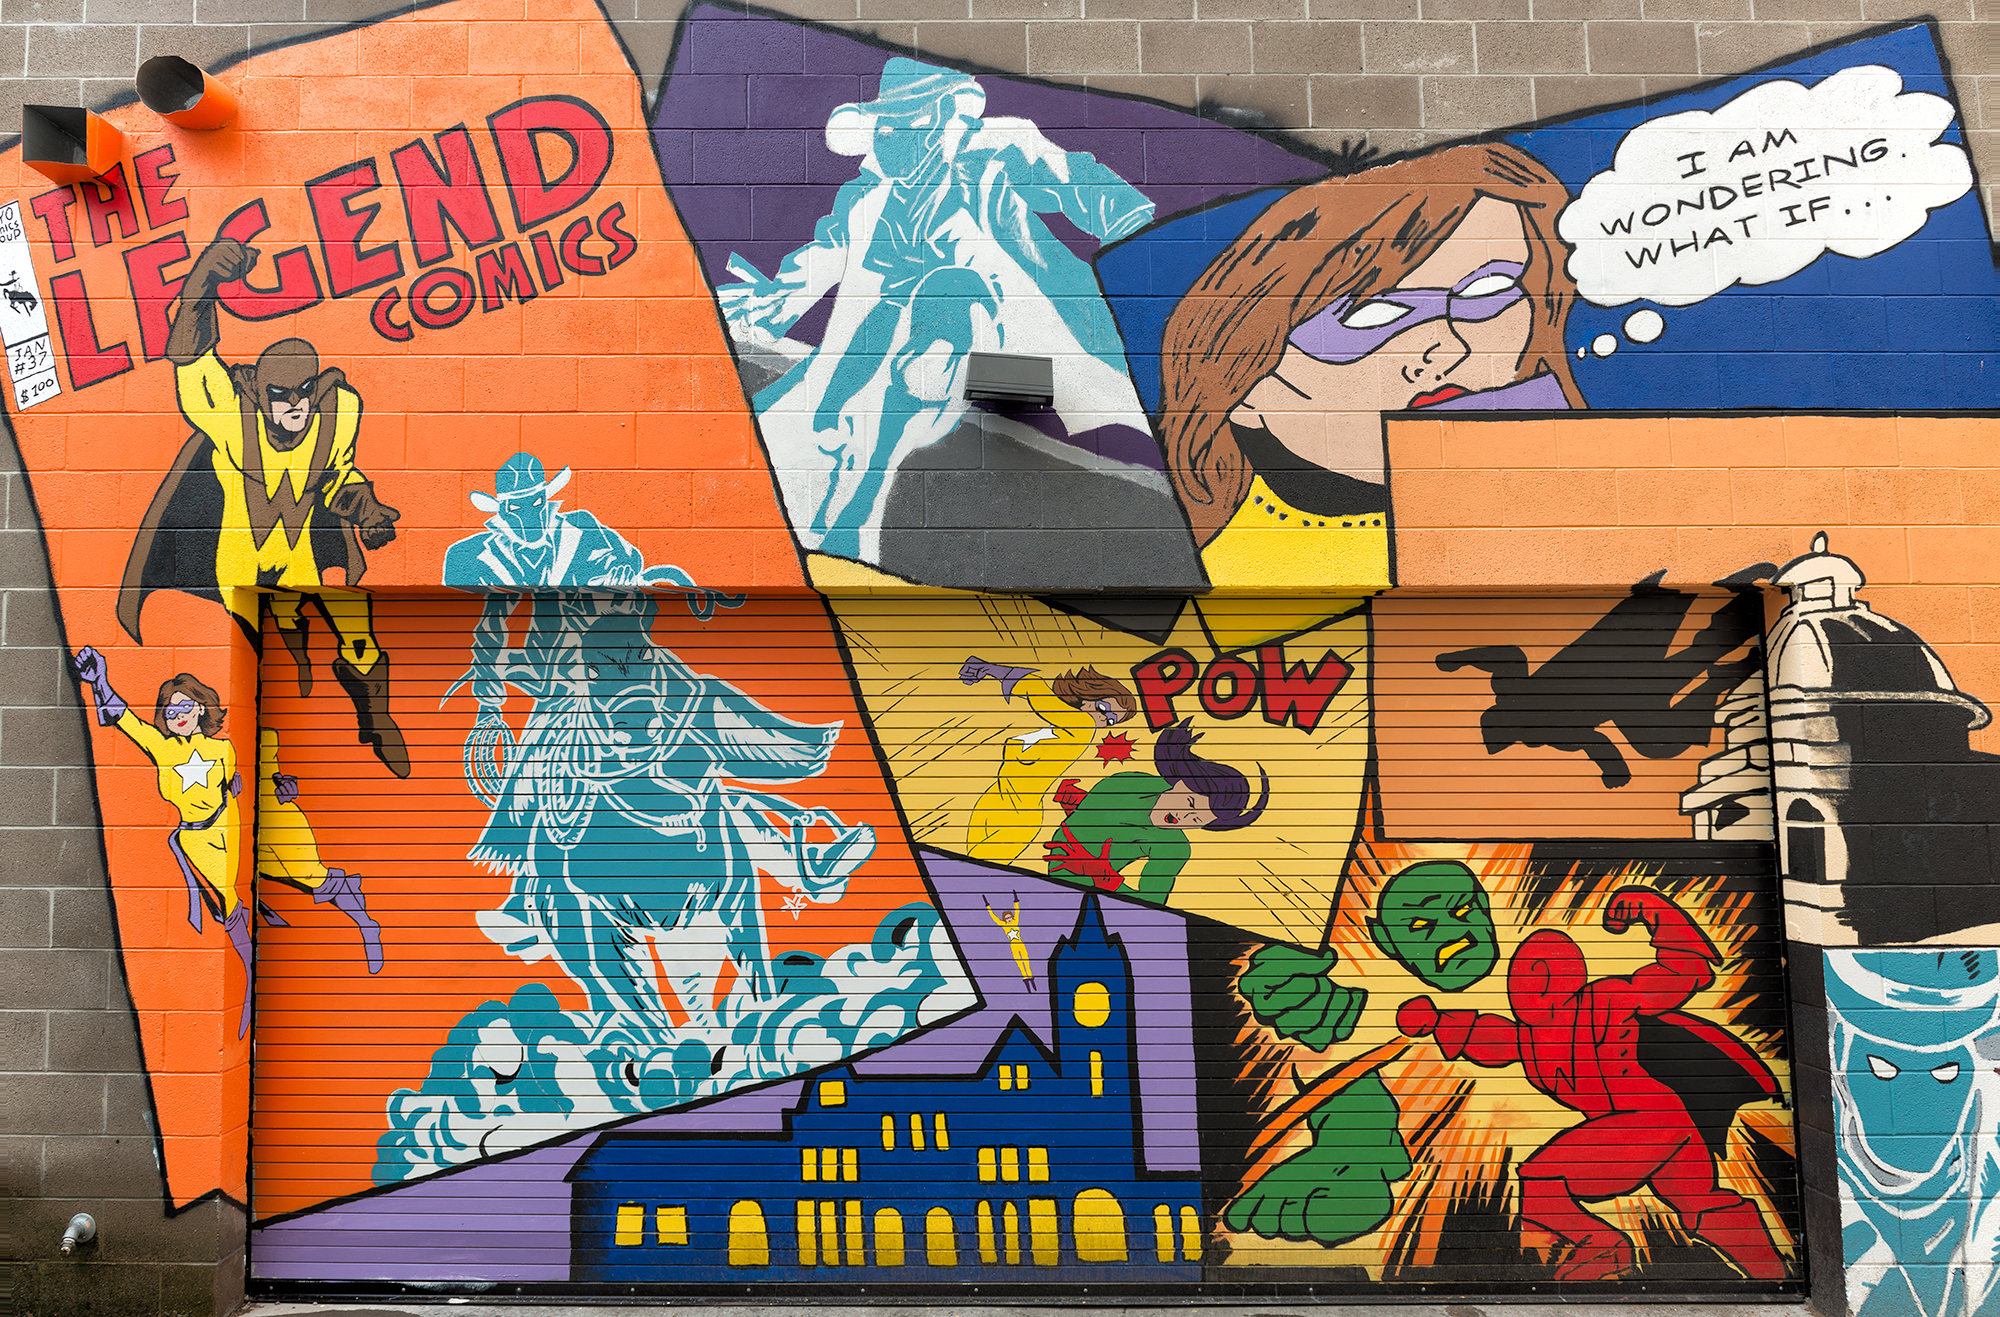 Legend Comics Mural. Cheyenne, Wyoming, 2016